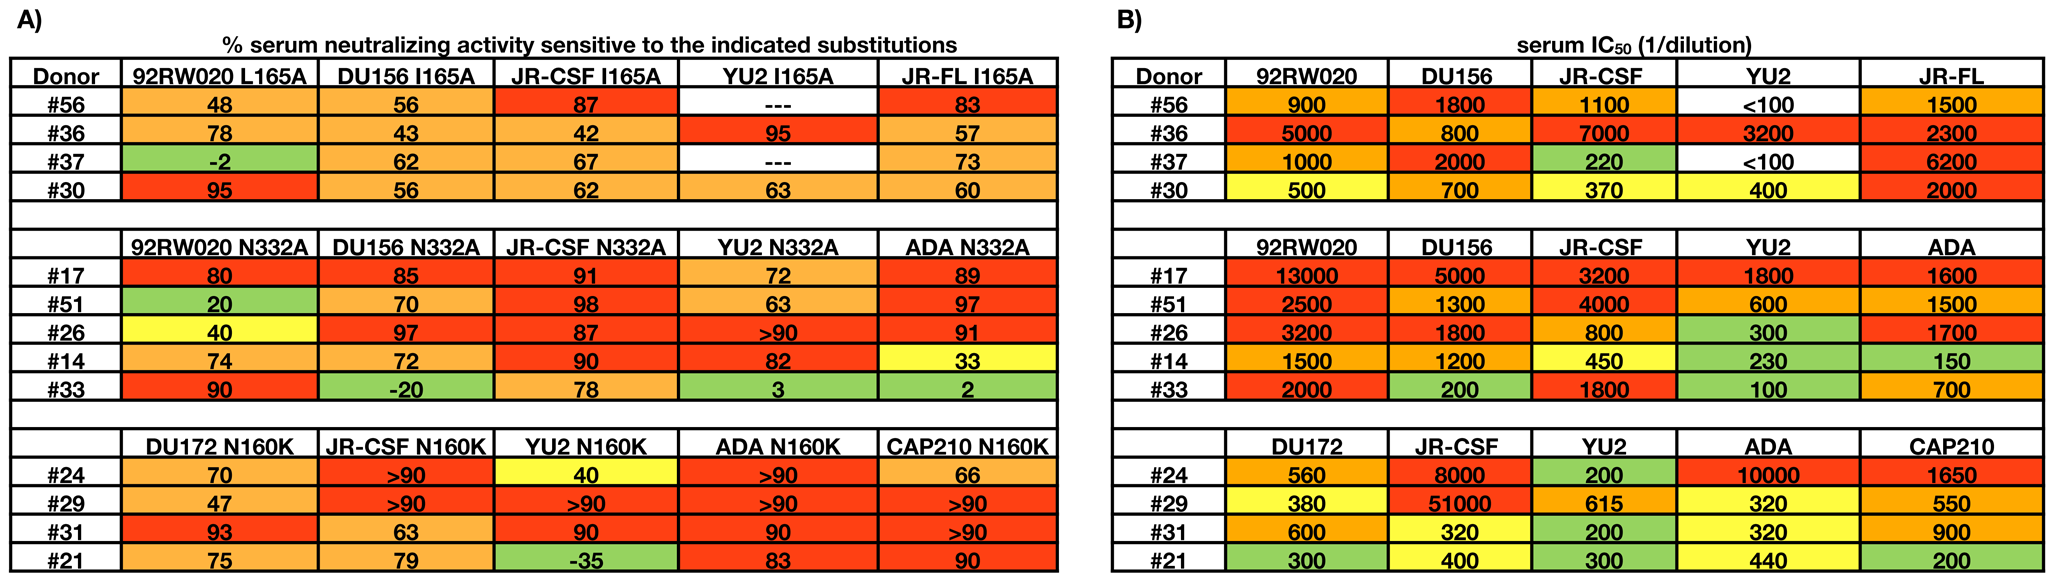 Effects of single amino acid substitutions on broad serum neutralizing activity.